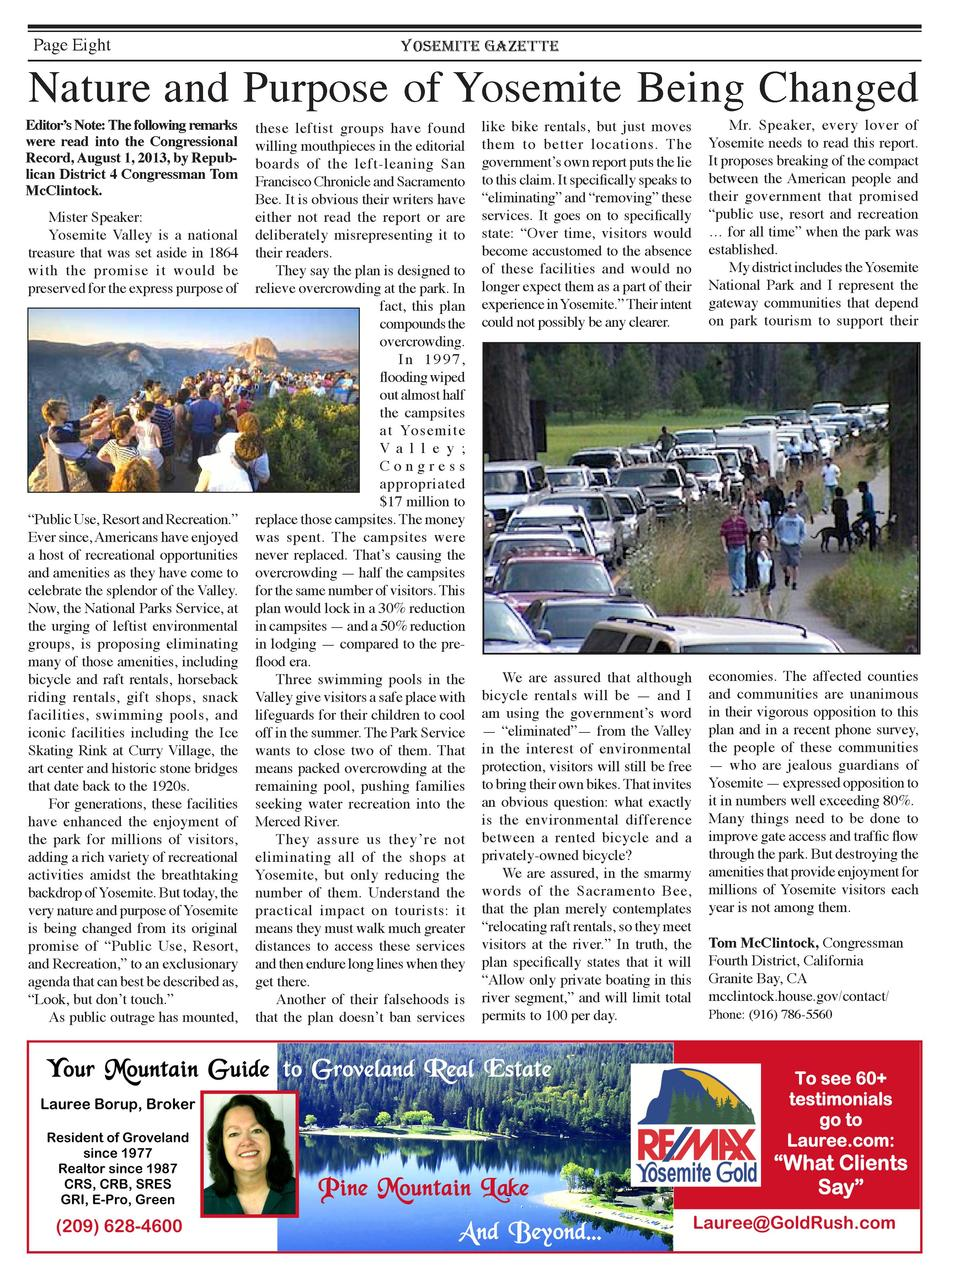 Page Eight  YOSEMITE GAZETTE  Nature and Purpose of Yosemite Being Changed  Editor   s Note  The following remarks were re...